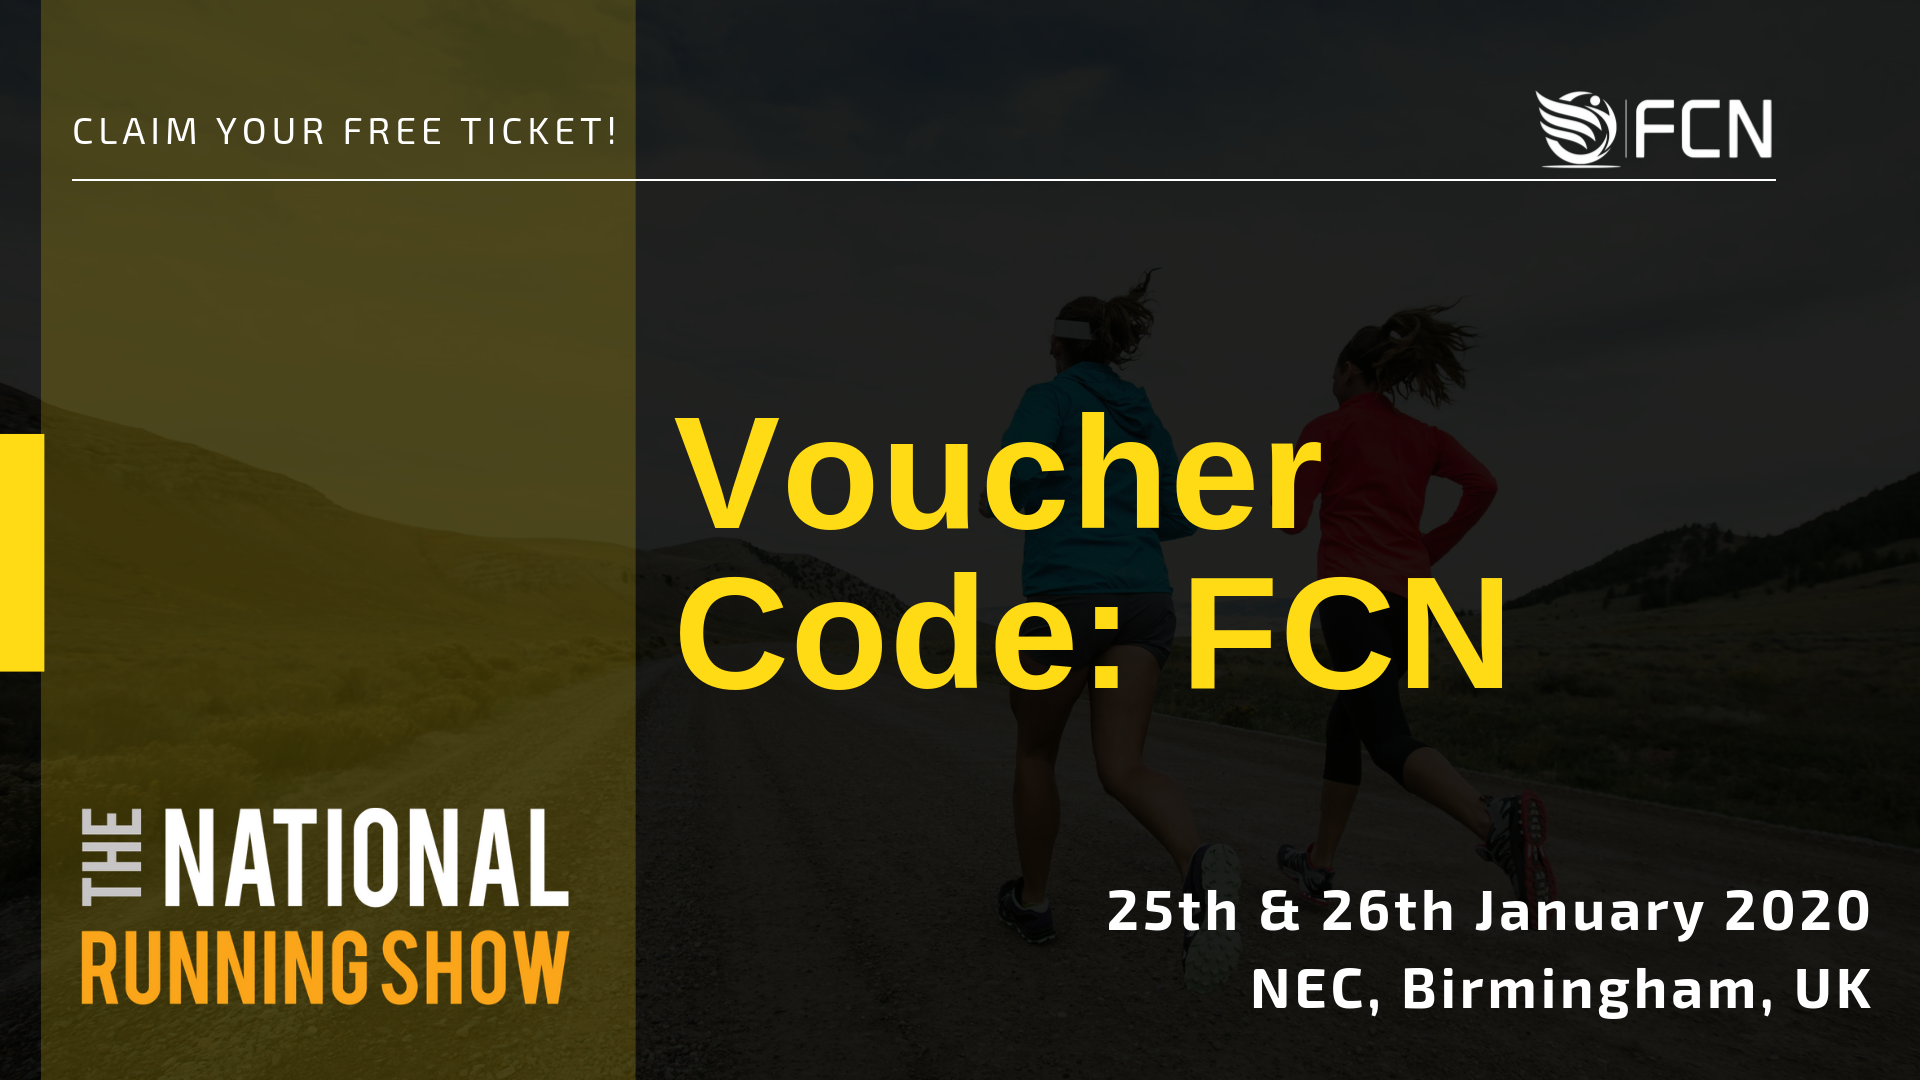 Free tickets to the 2020 National Running Show, UK